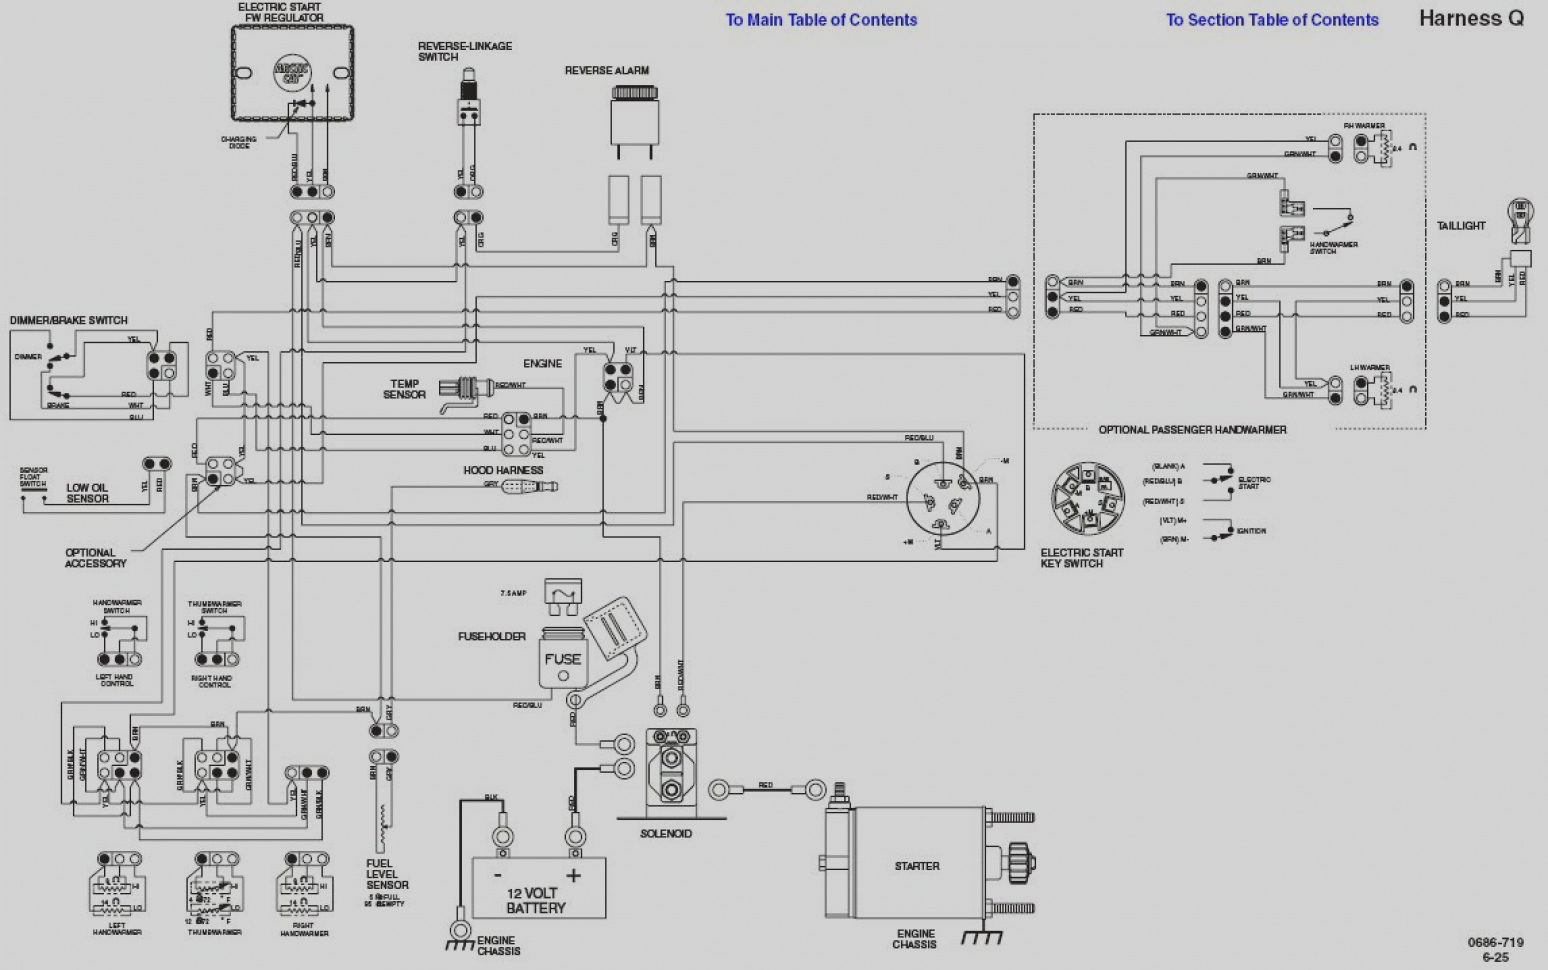 Polaris Rzr 800 3500 Winch Wiring Diagram - Library Of Wiring Diagrams •